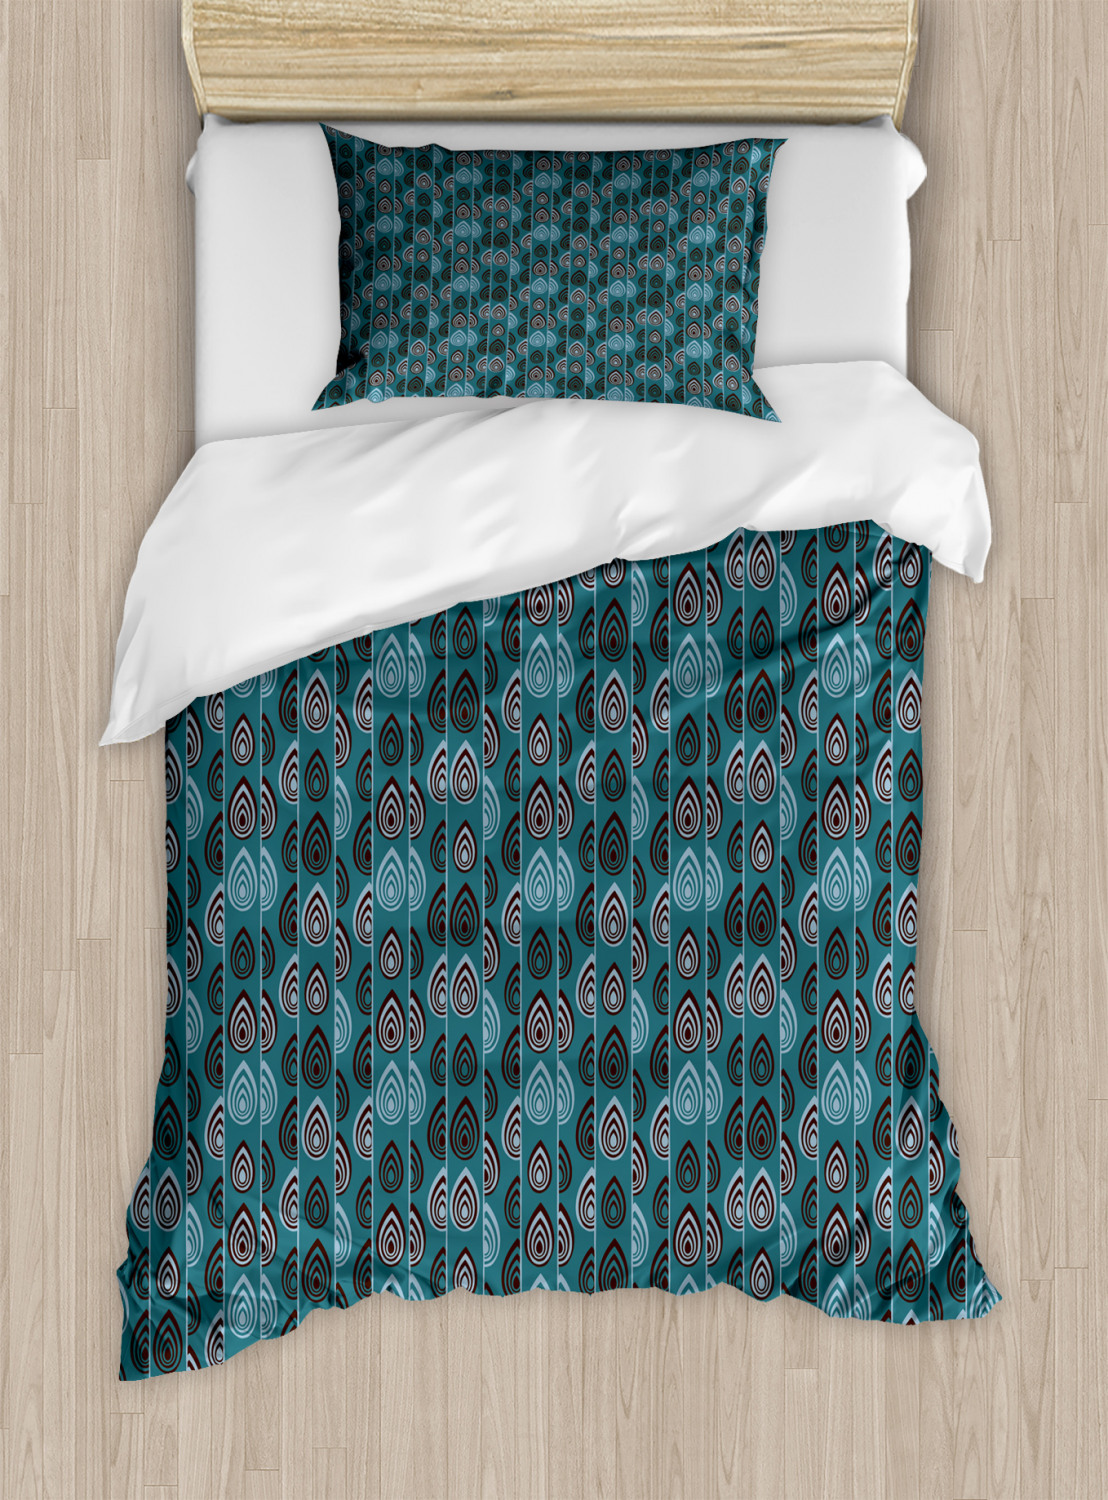 Timeless-Oriental-Duvet-Cover-Set-Twin-Queen-King-Sizes-with-Pillow-Shams thumbnail 52